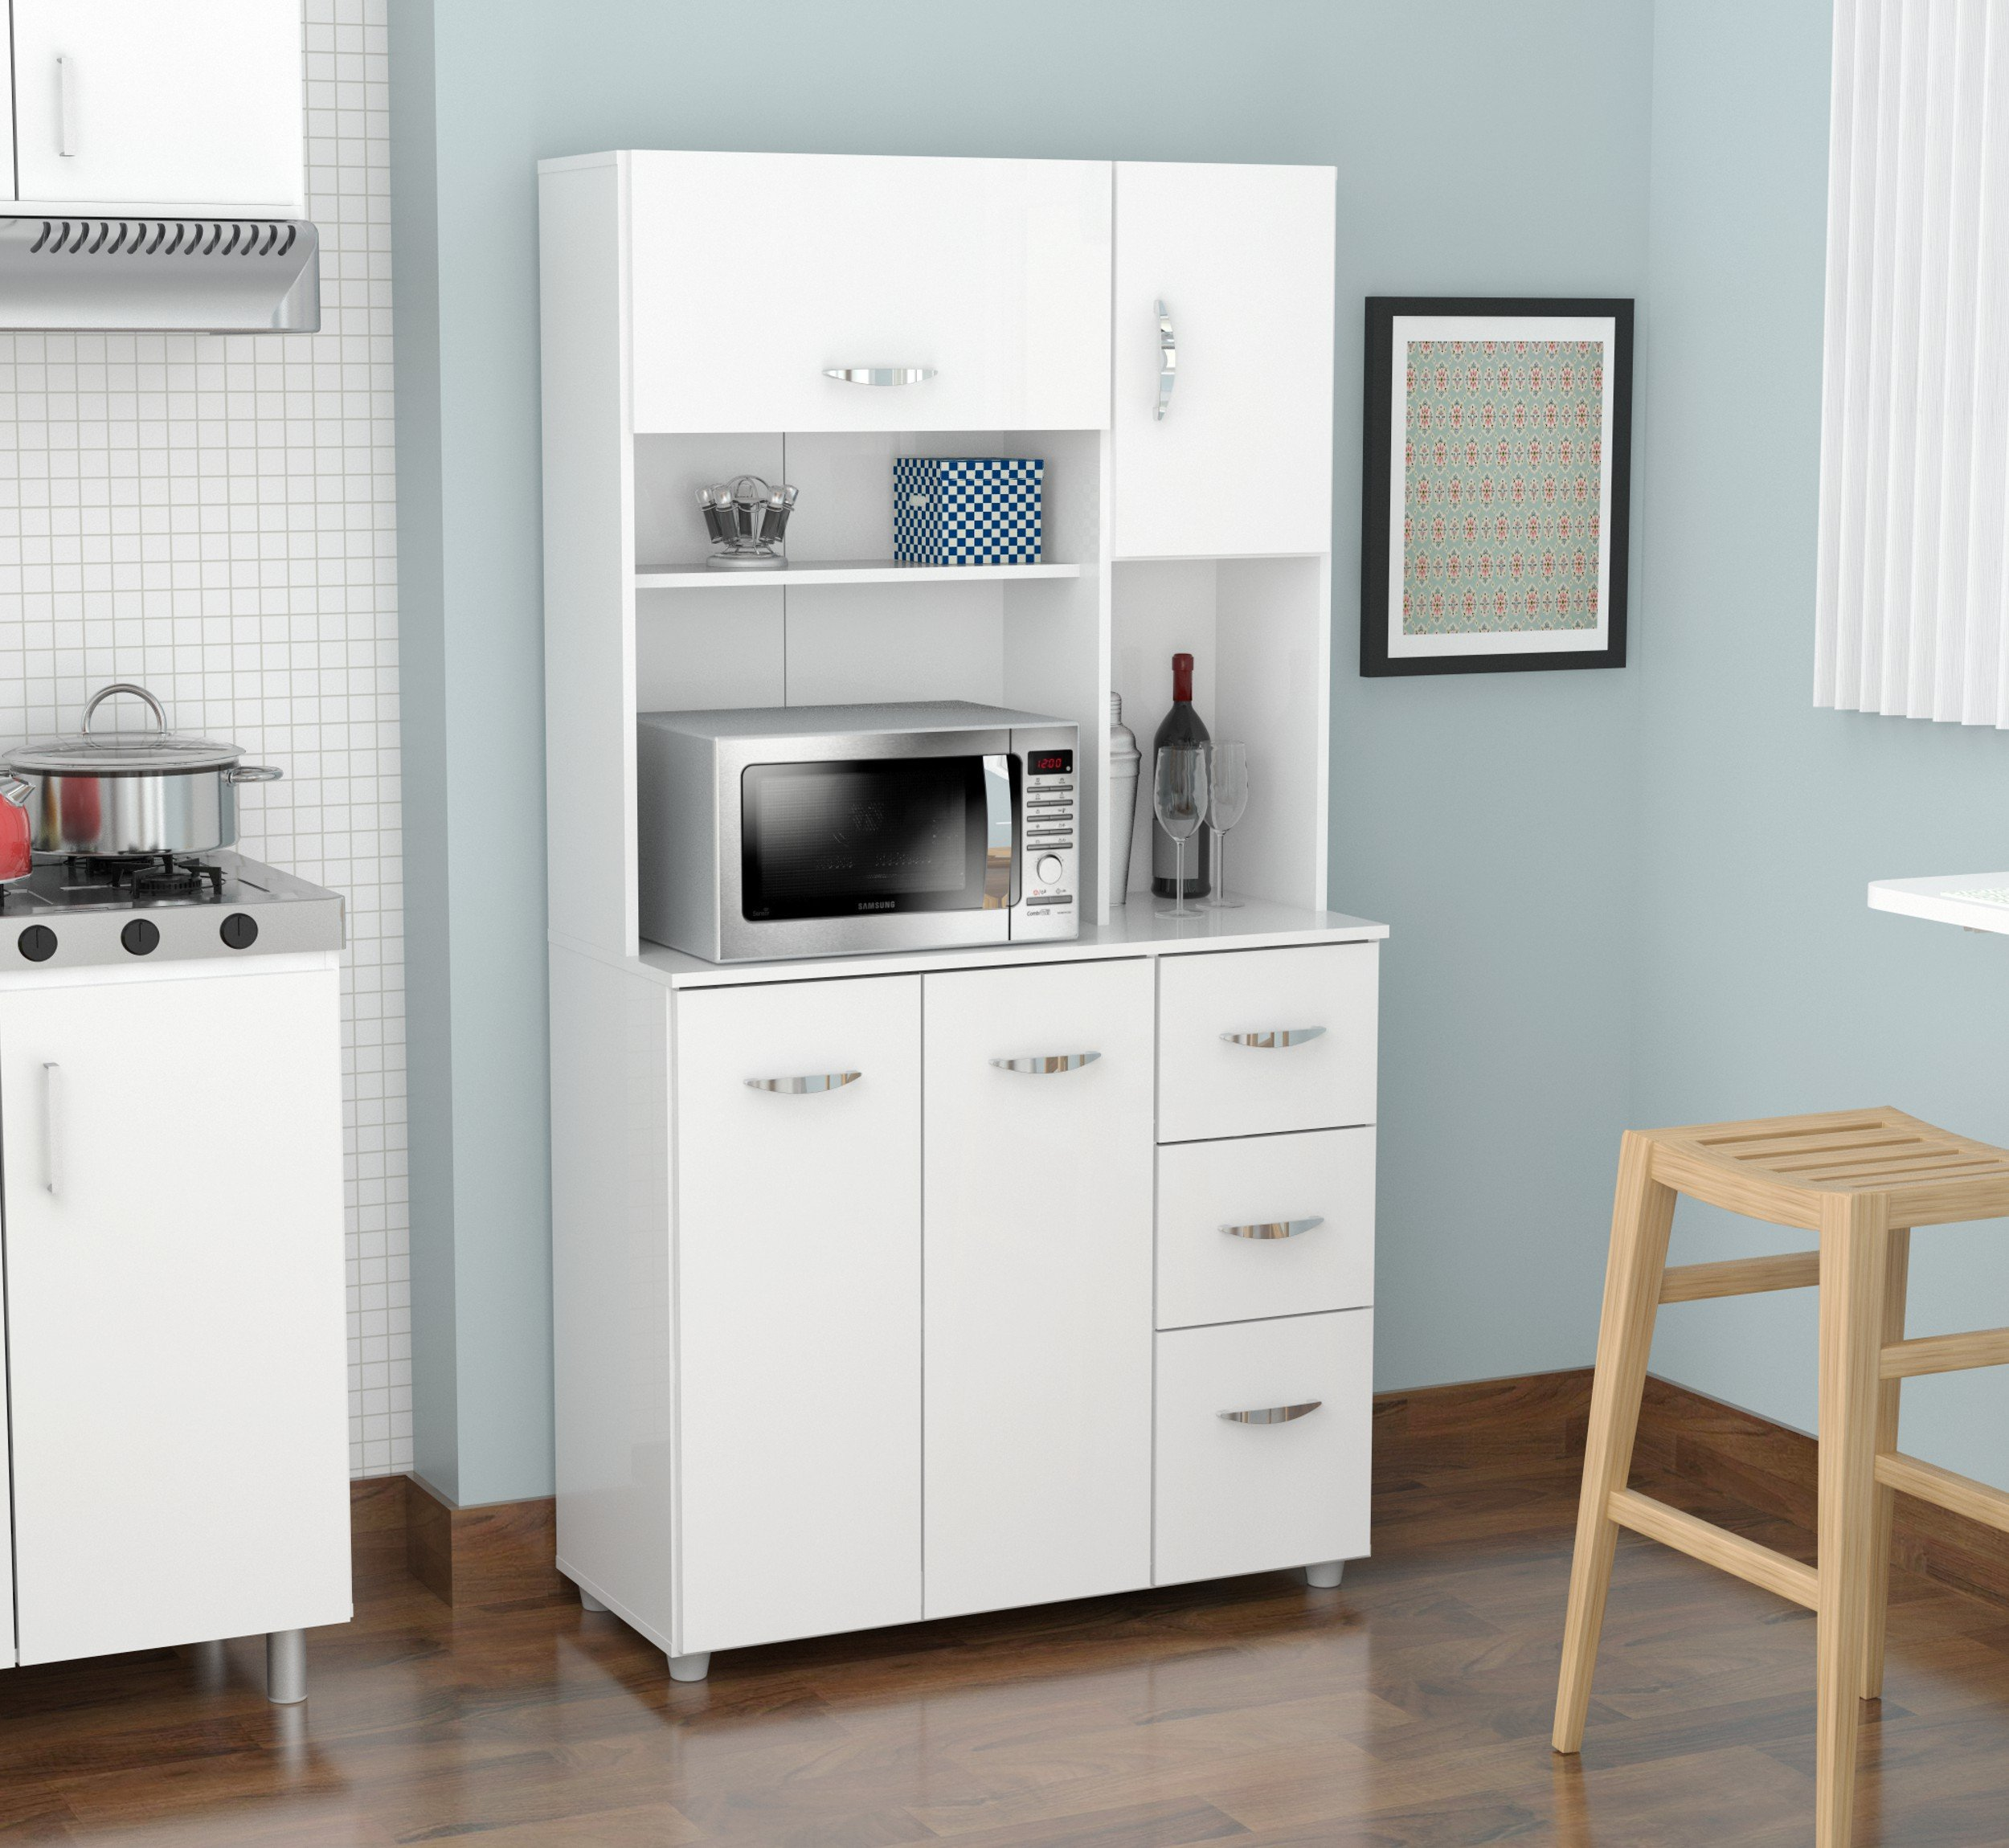 Inval America 4 Door Storage Cabinet with Microwave Cart, Laricina White by Inval America (Image #2)